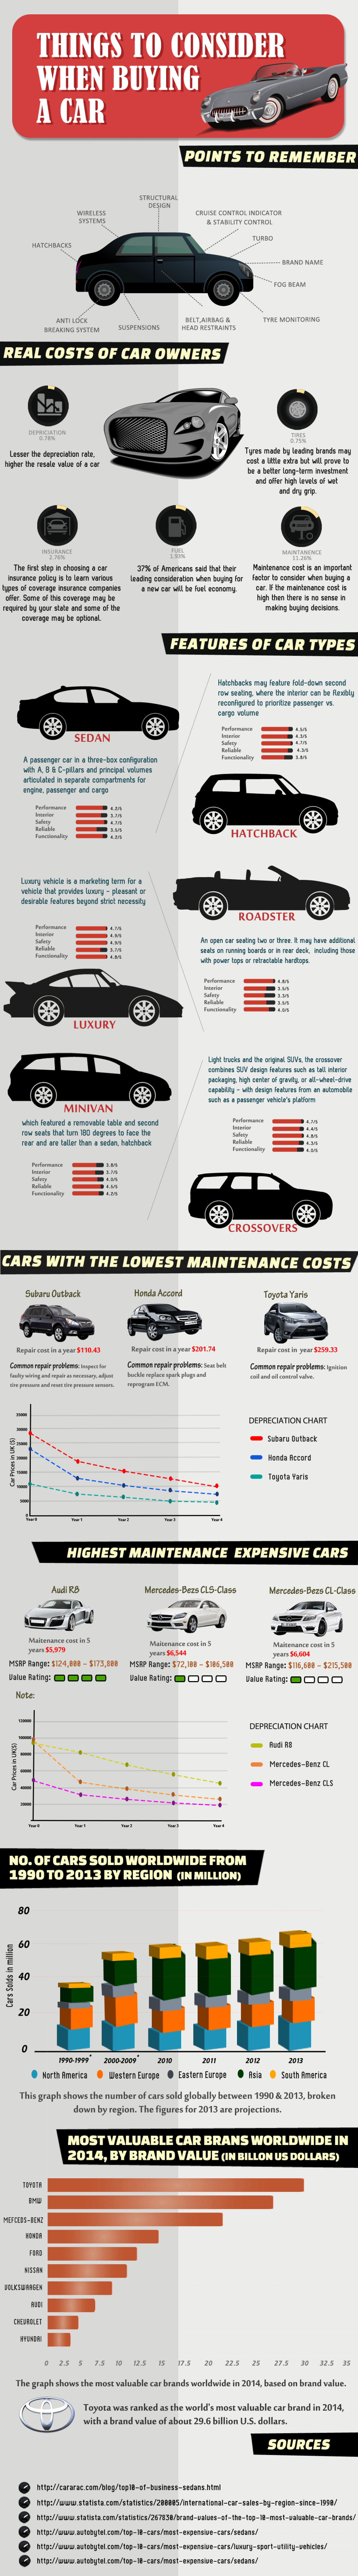 Things to consider when buying a car Infographic